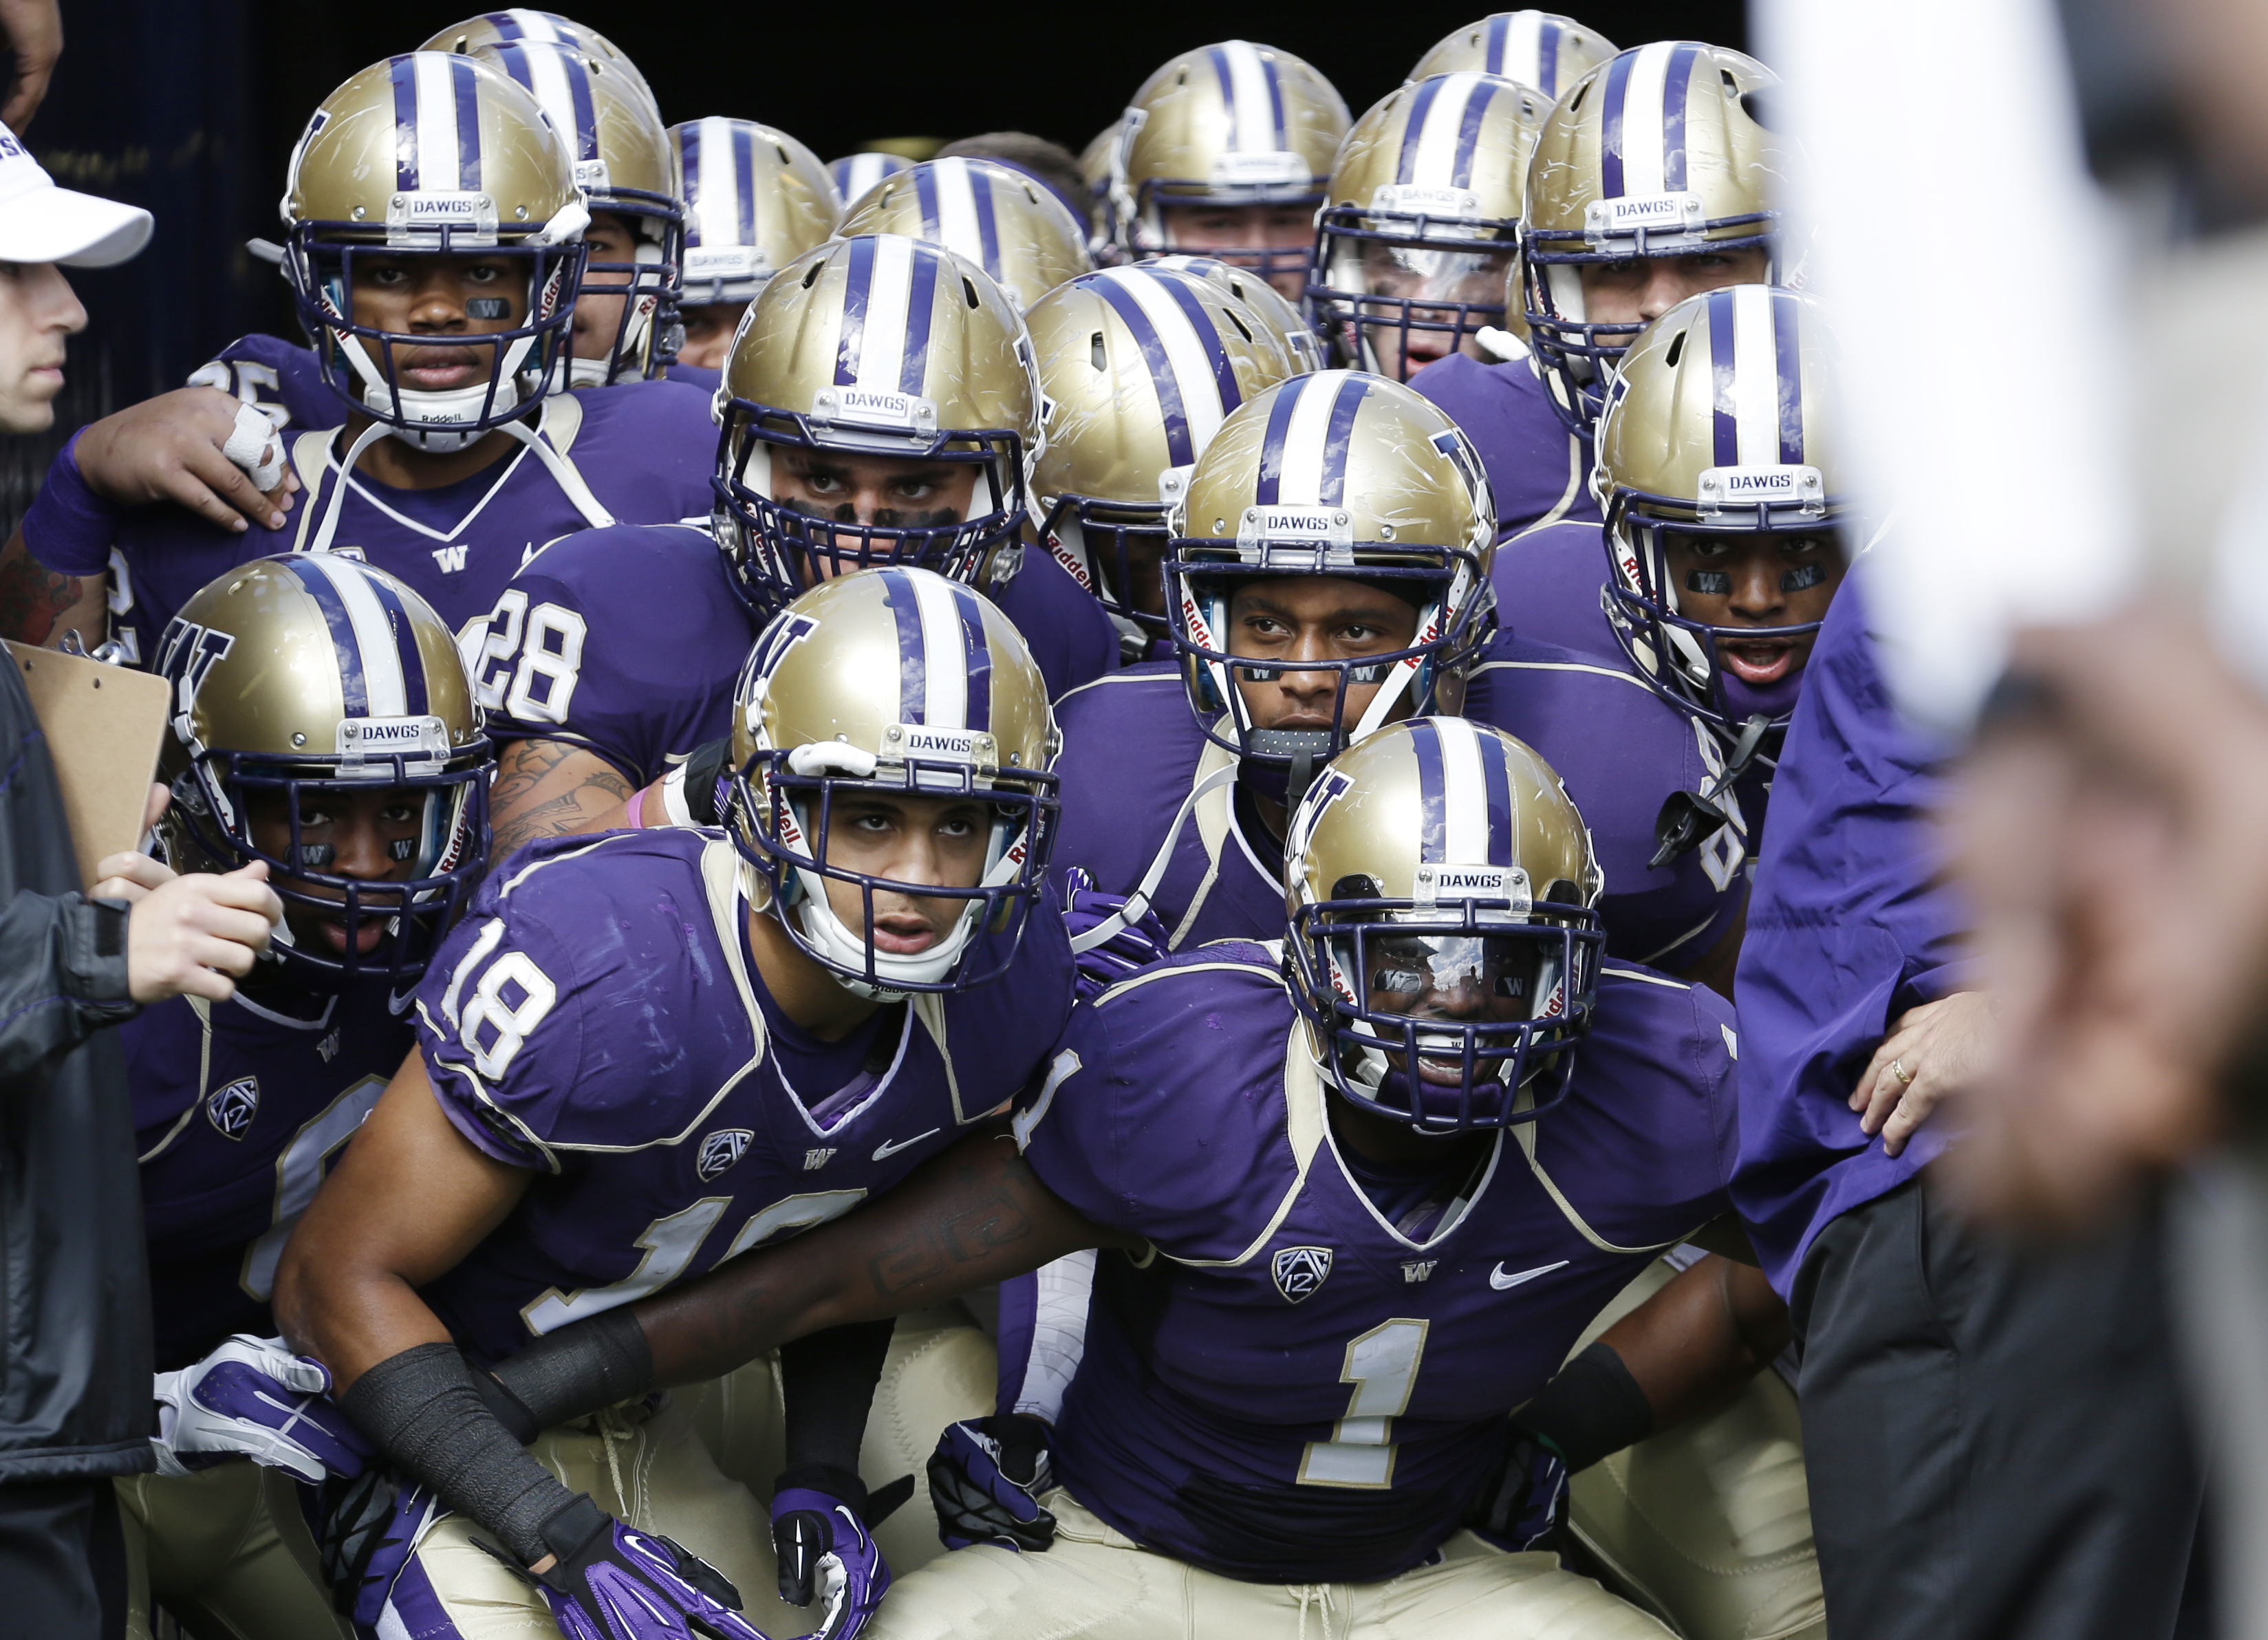 Washington players wait in their tunnel to take to the field before a game against Idaho State in Seattle.  (Elaine Thompson/Associated Press)